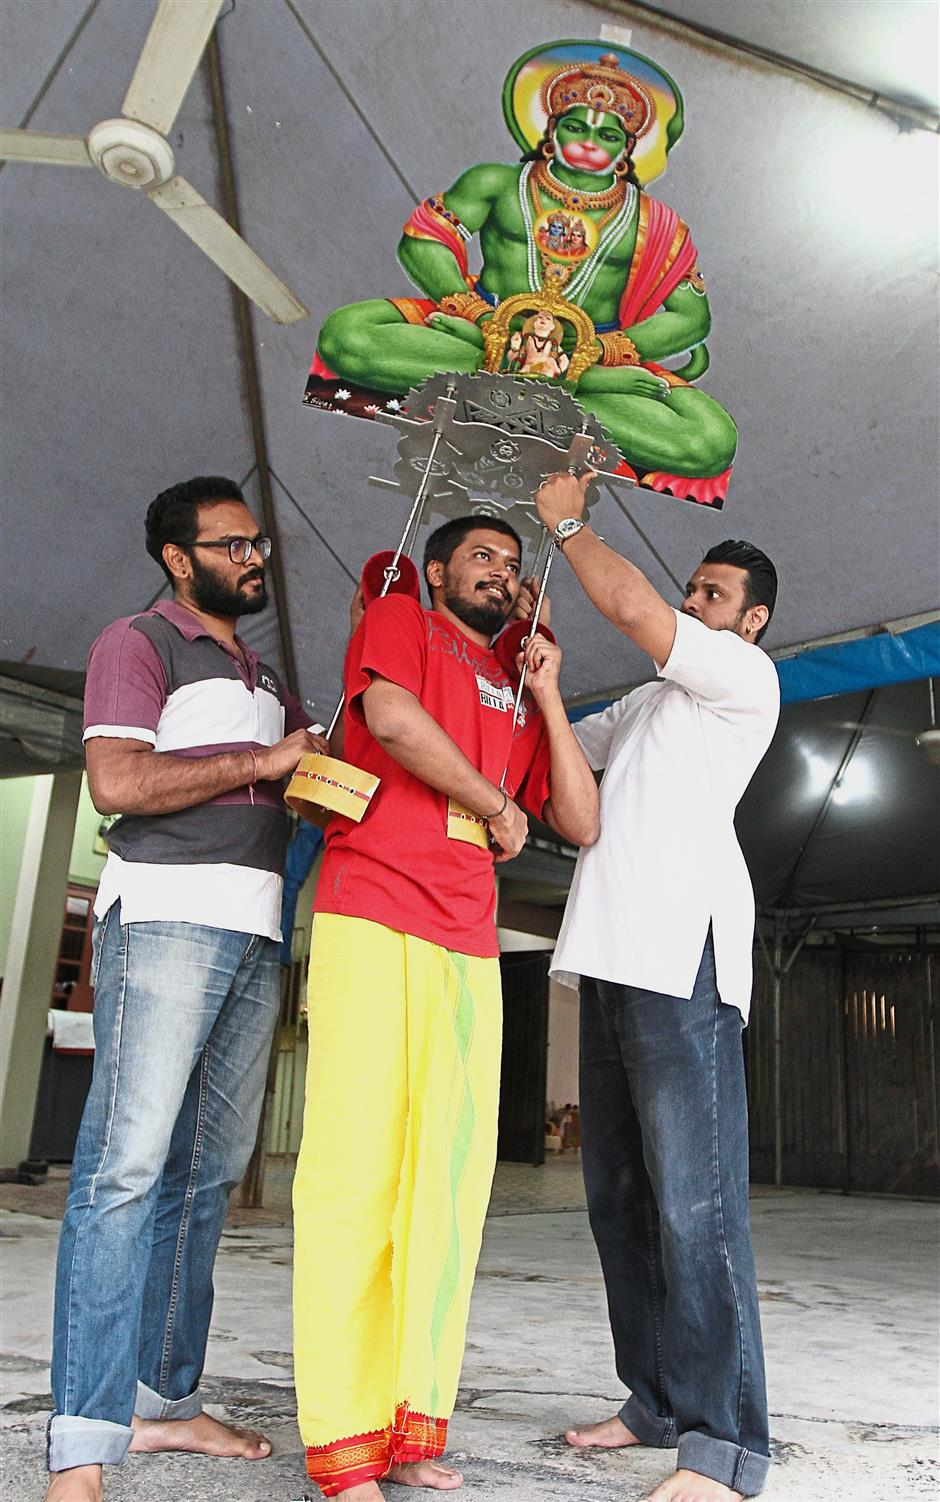 Sudhankumar (centre) being assisted by Uthaya Suthern (left) and Thinesh as he tests out a kavadi they built for Thaipusam.